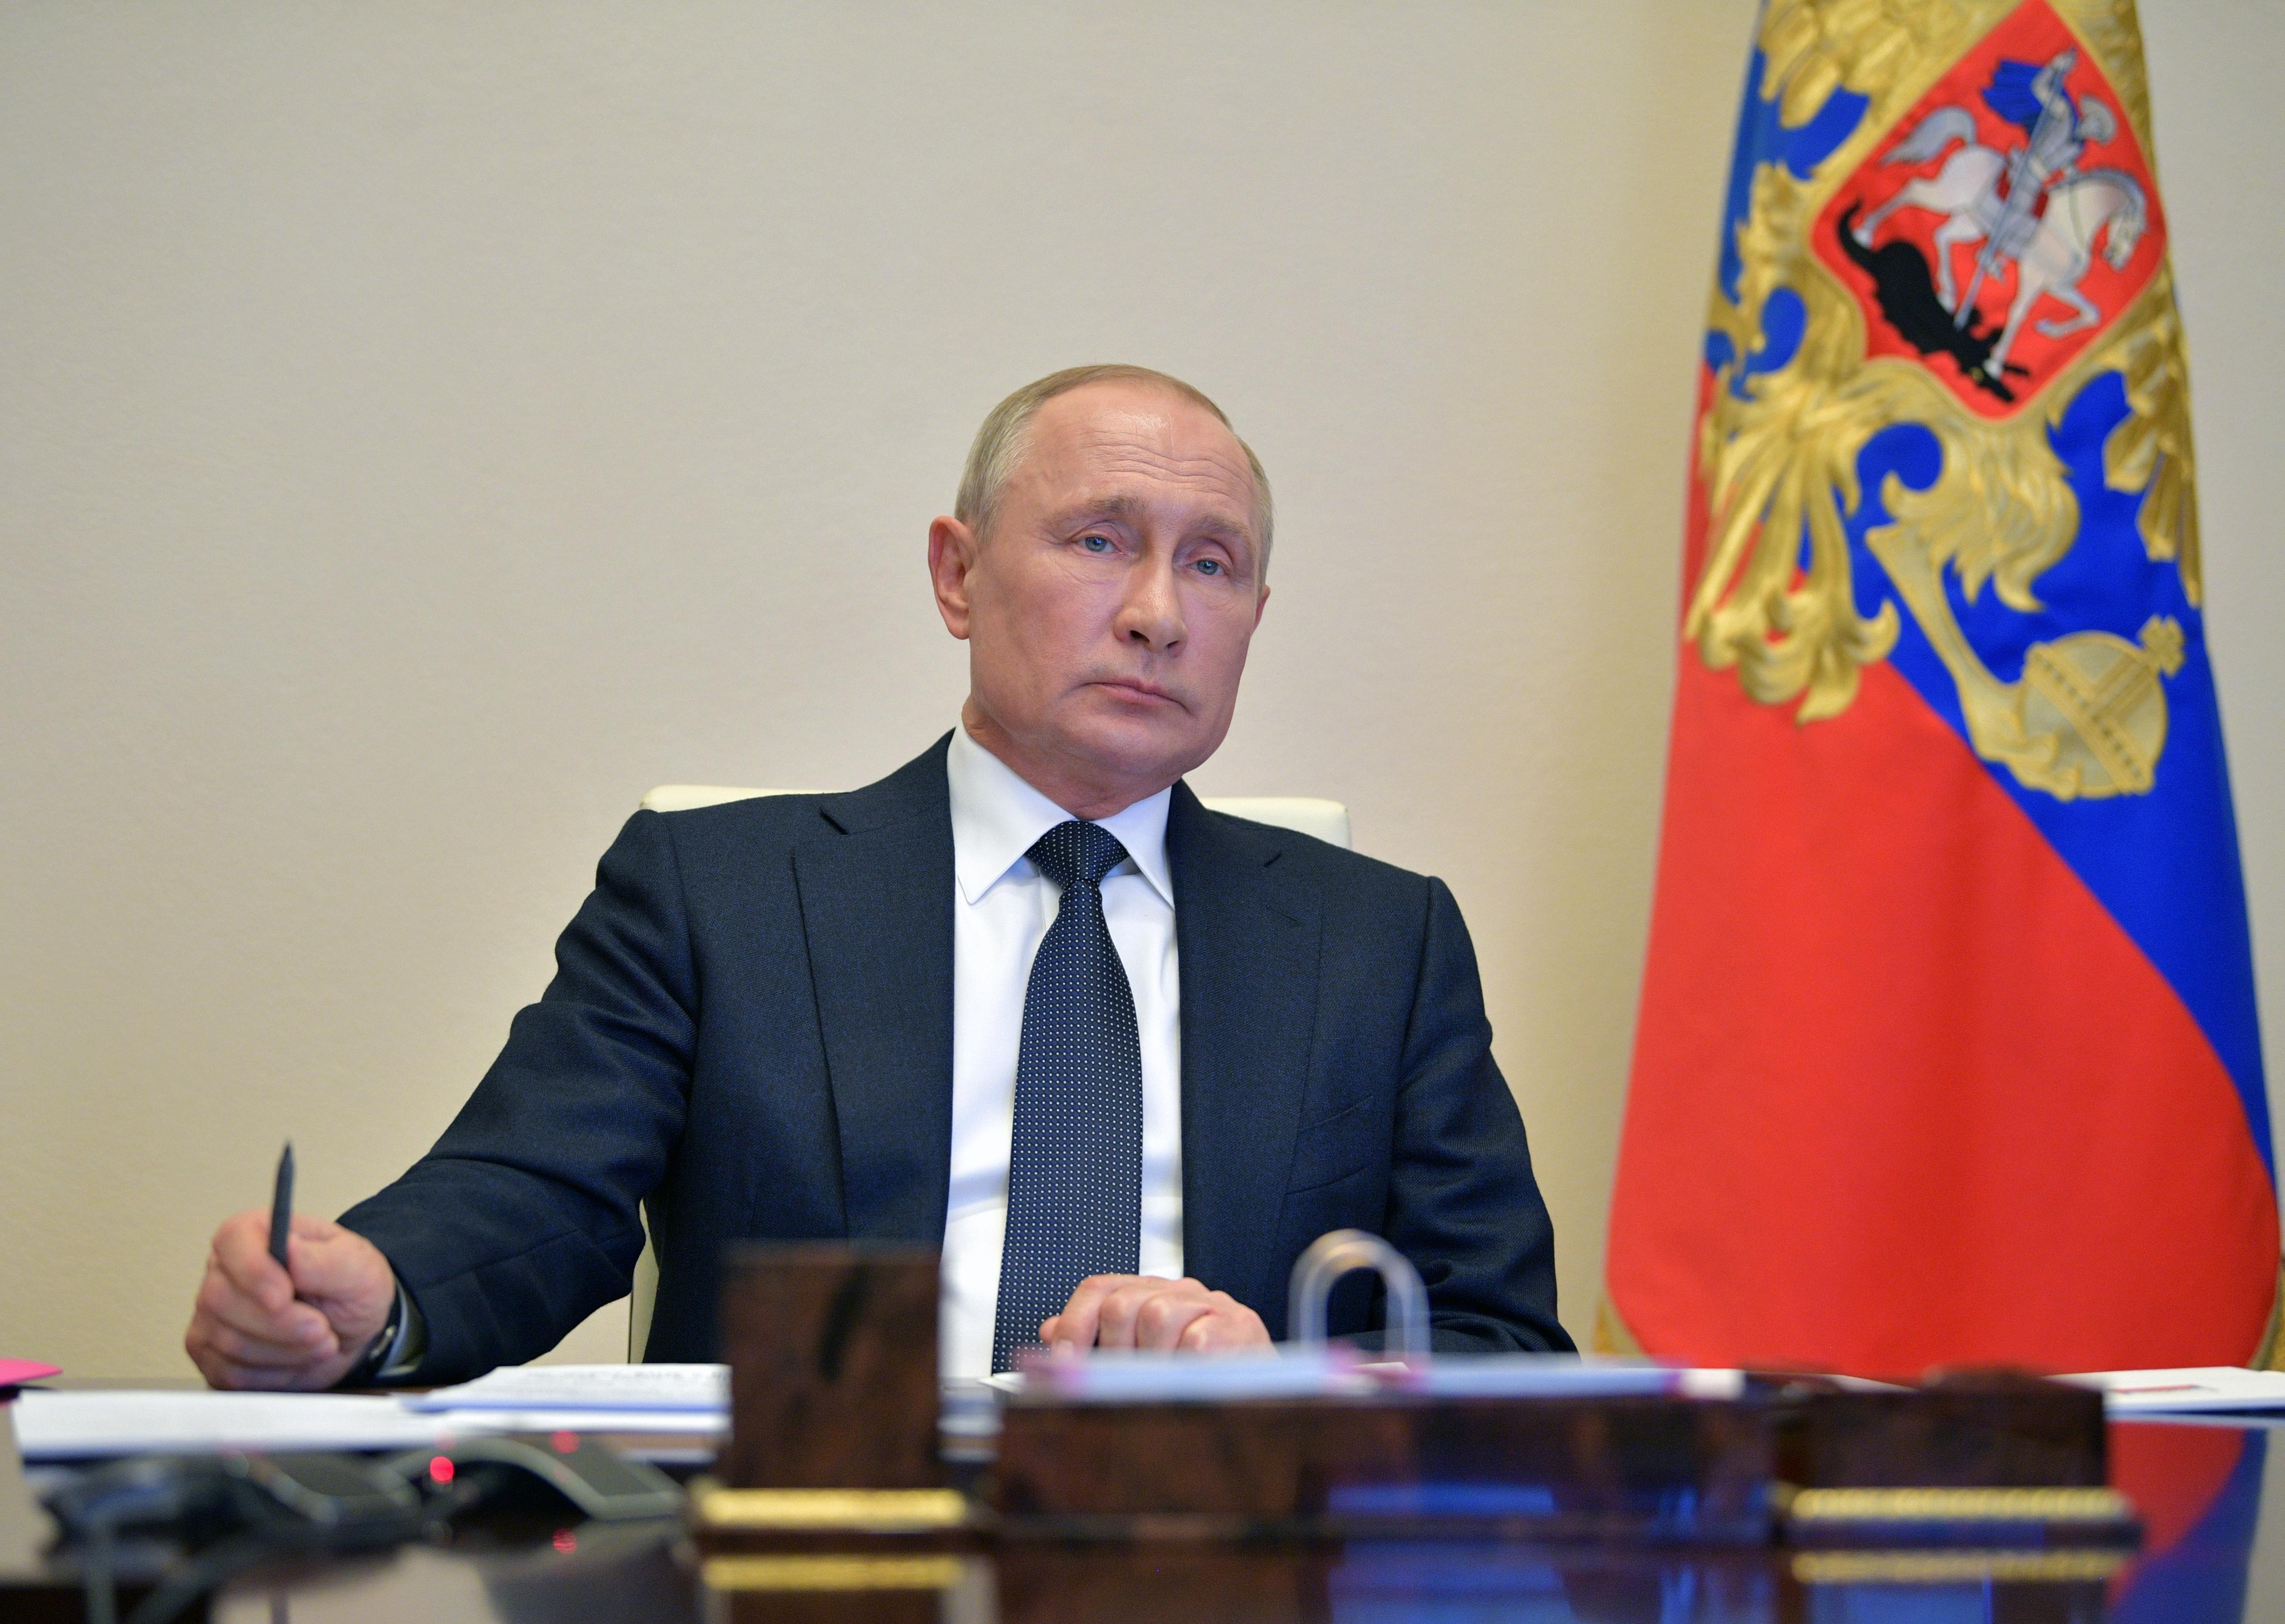 Putin S Rating Dips To Low But Poll Shows Rising Support For Extending Rule Reuters